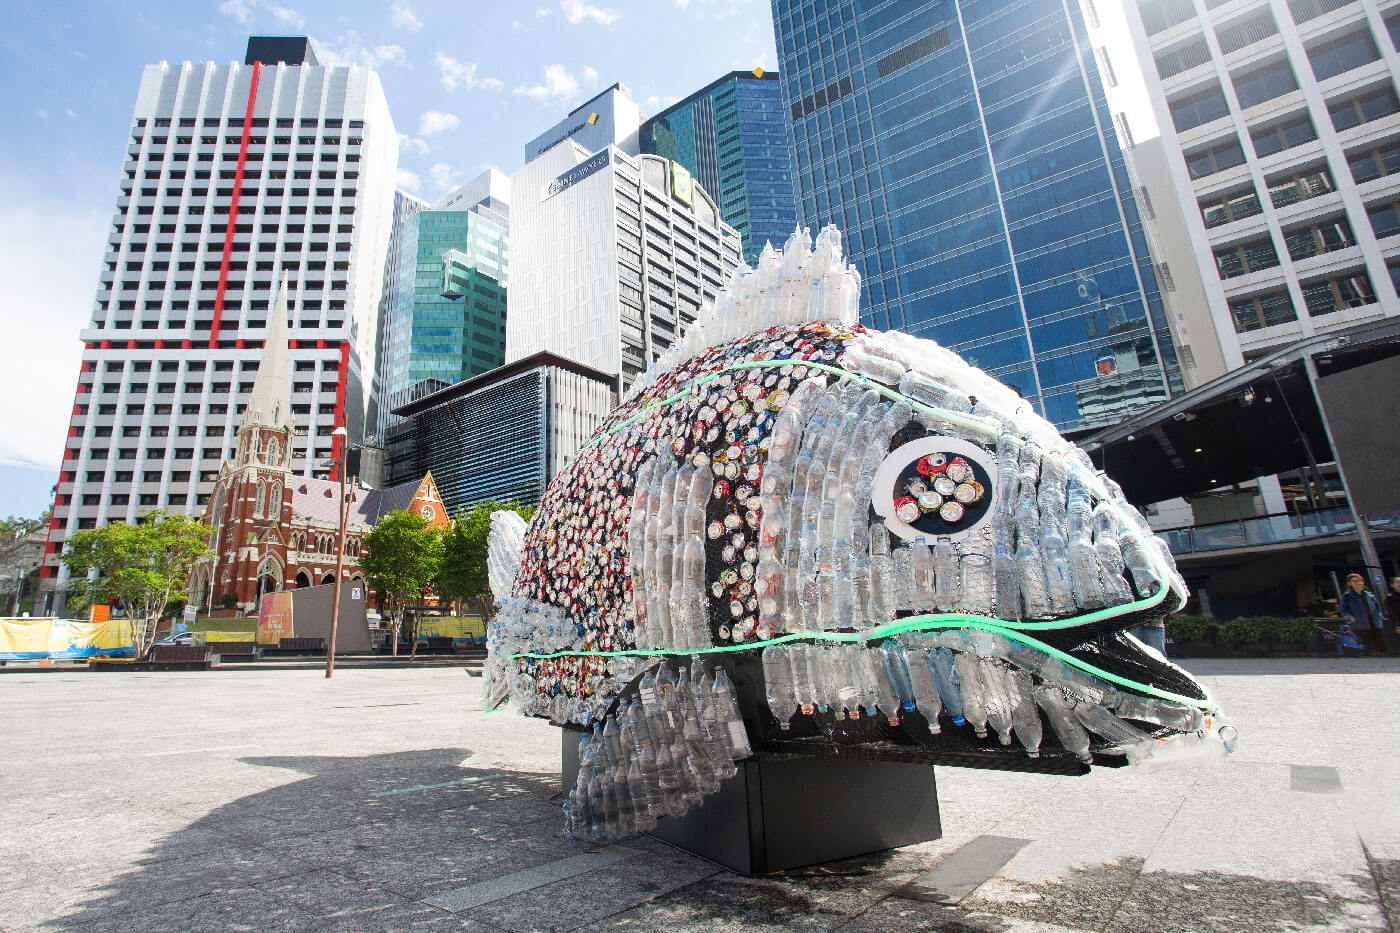 fish artwork statue made from collected containers